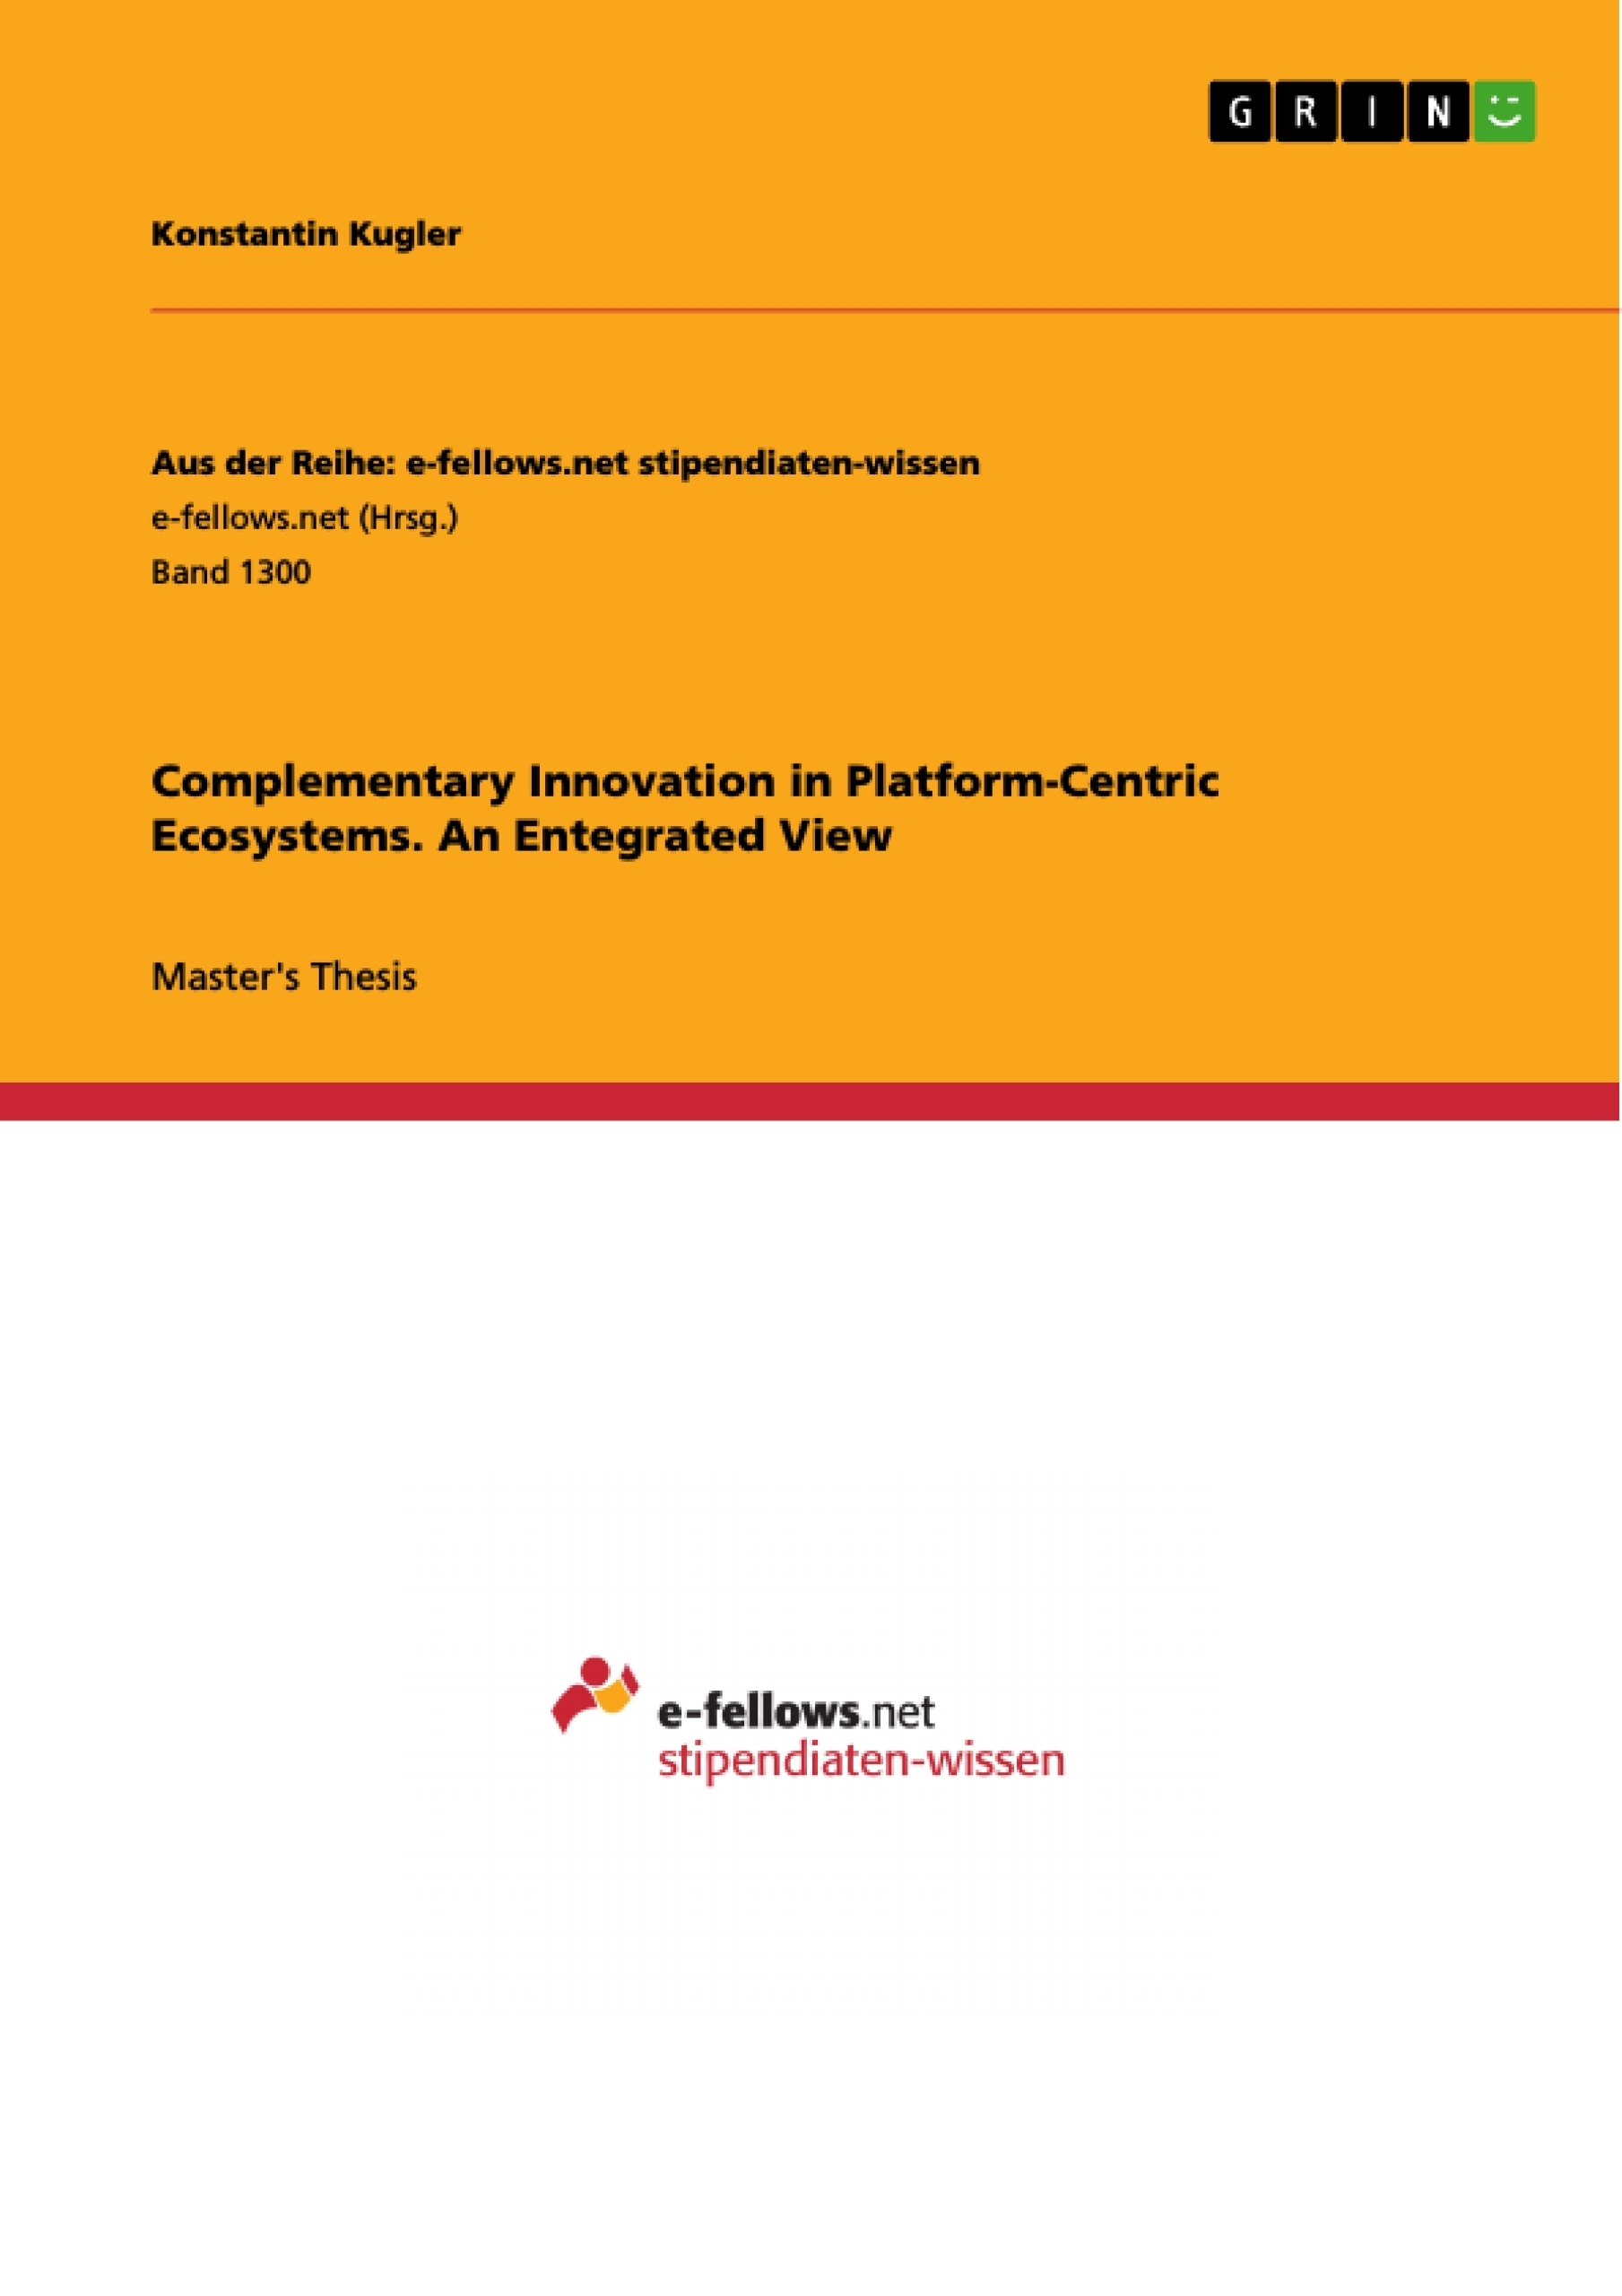 Title: Complementary Innovation in Platform-Centric Ecosystems. An Entegrated View